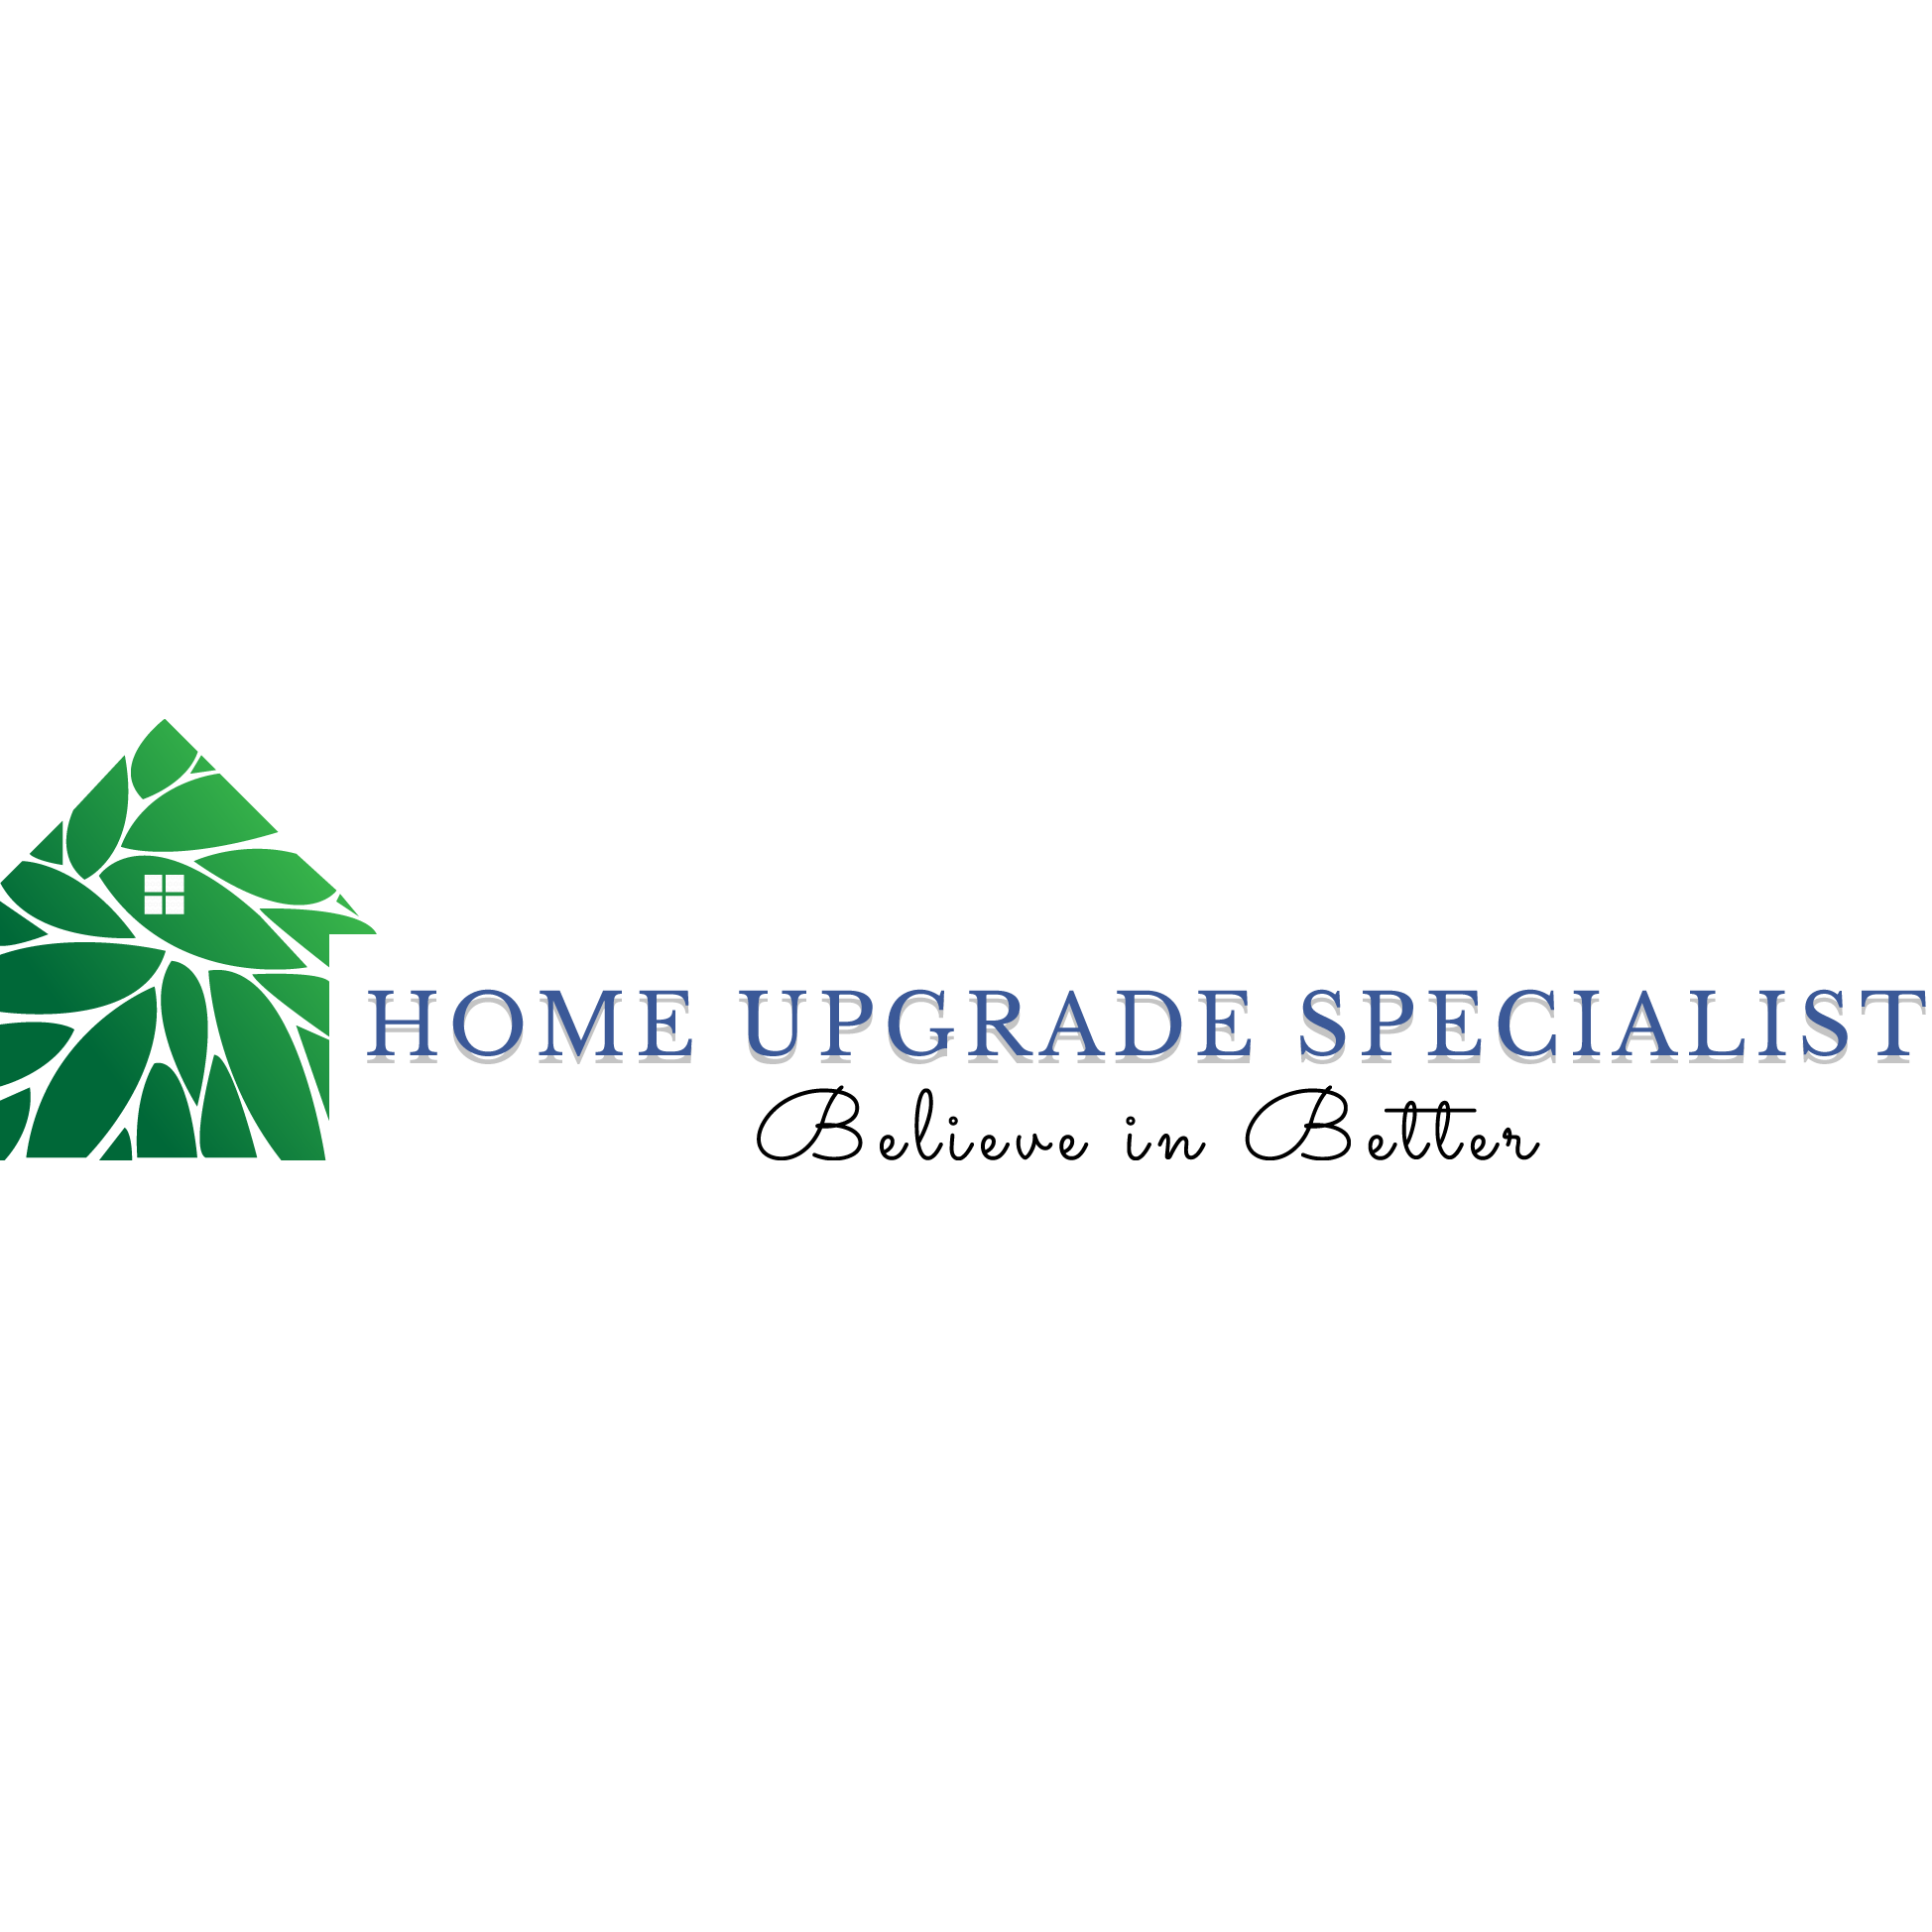 Home Upgrade Specialist